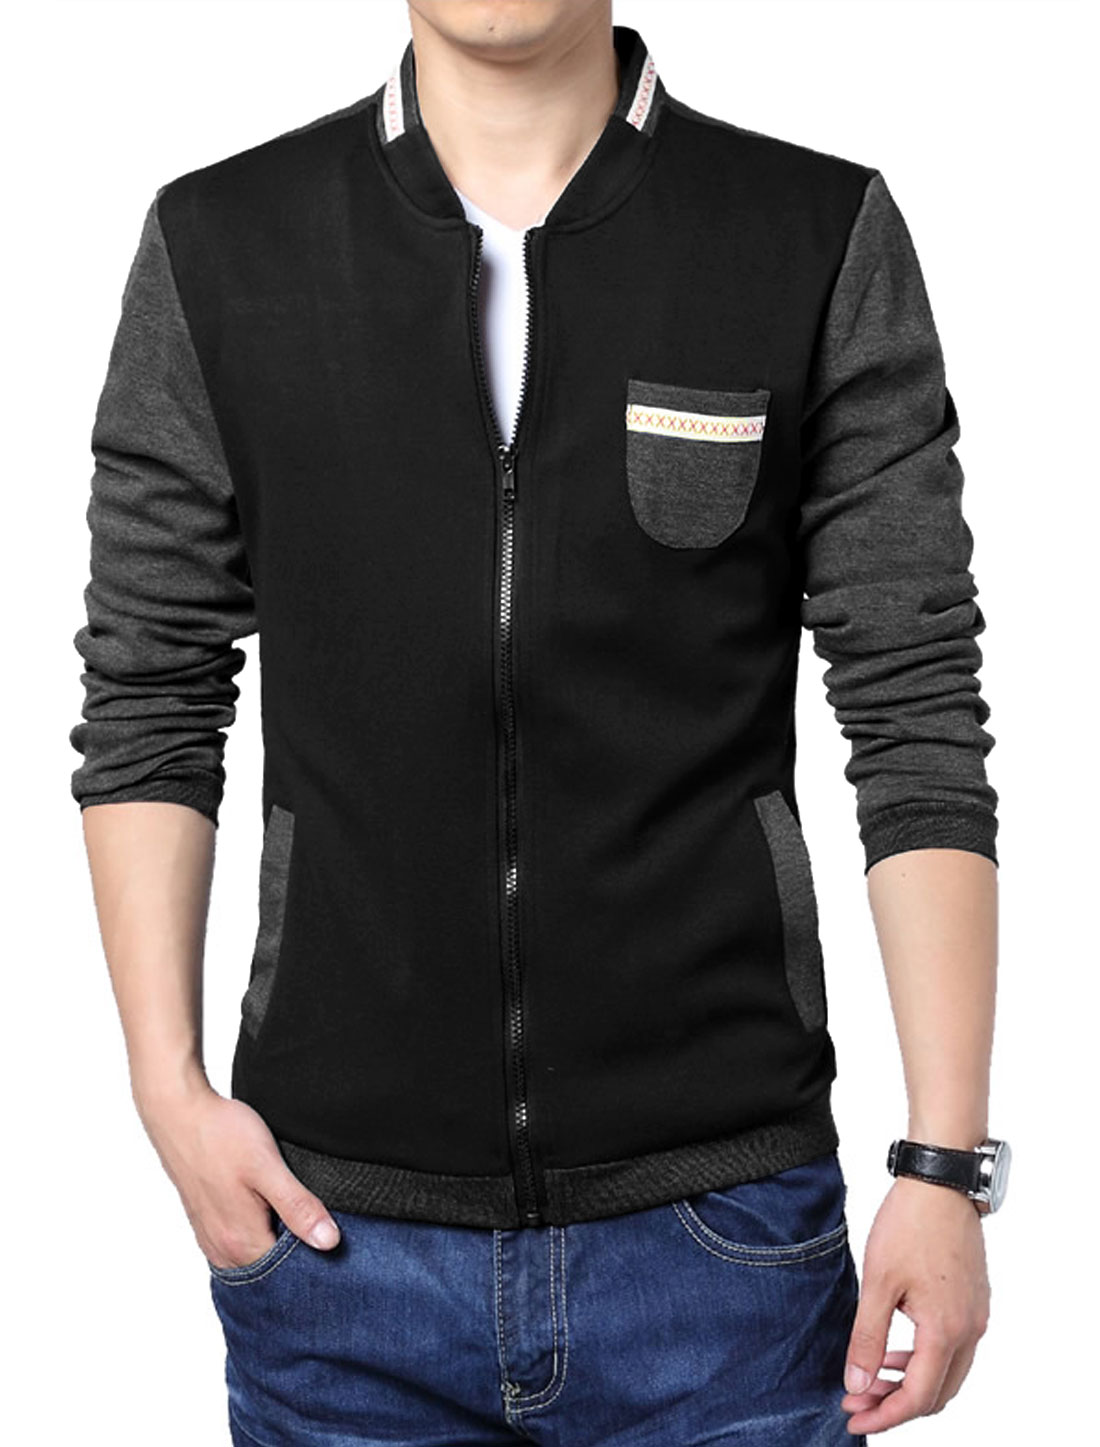 Men Long Sleeve Zip Up Panel Design Colorblock Casual Jacket Black L